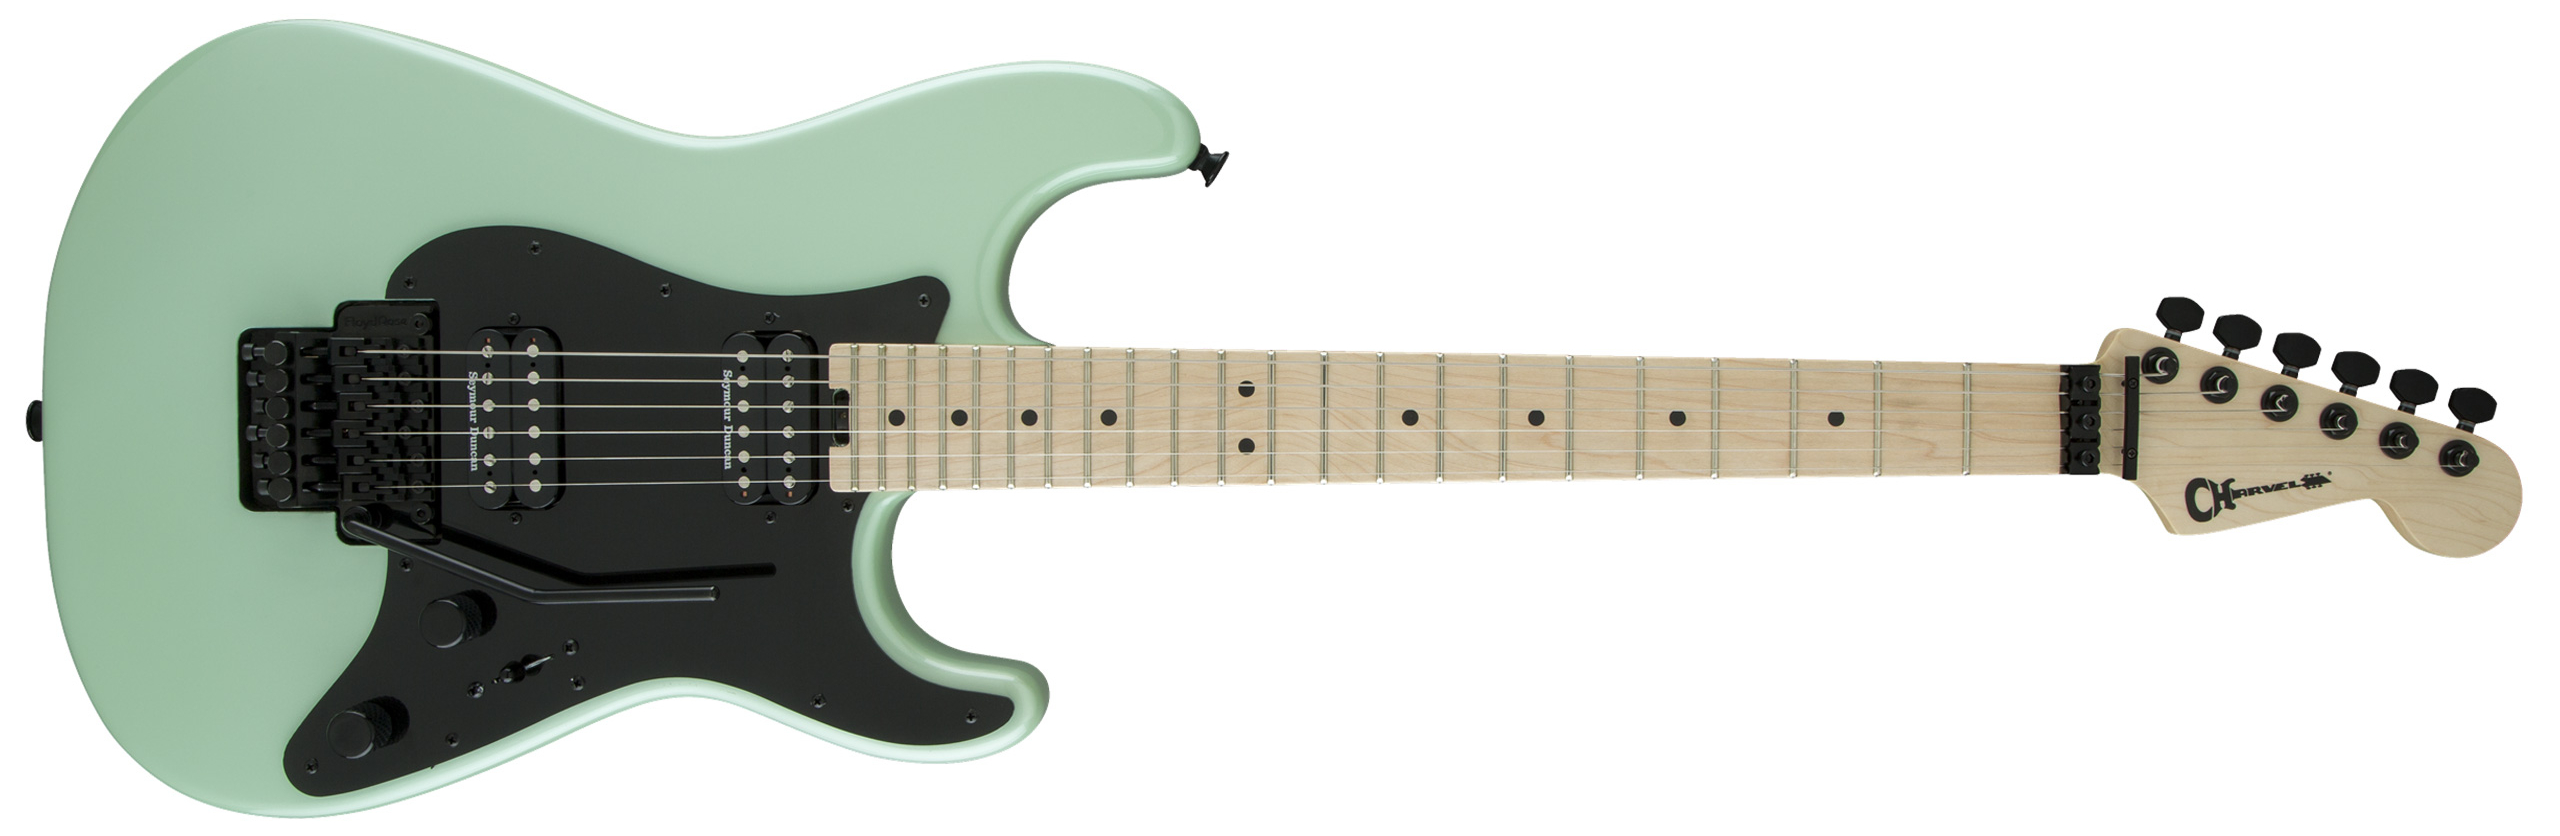 CHARVEL Pro-Mod So-Cal Style 1 HH FR MN Specific Ocean